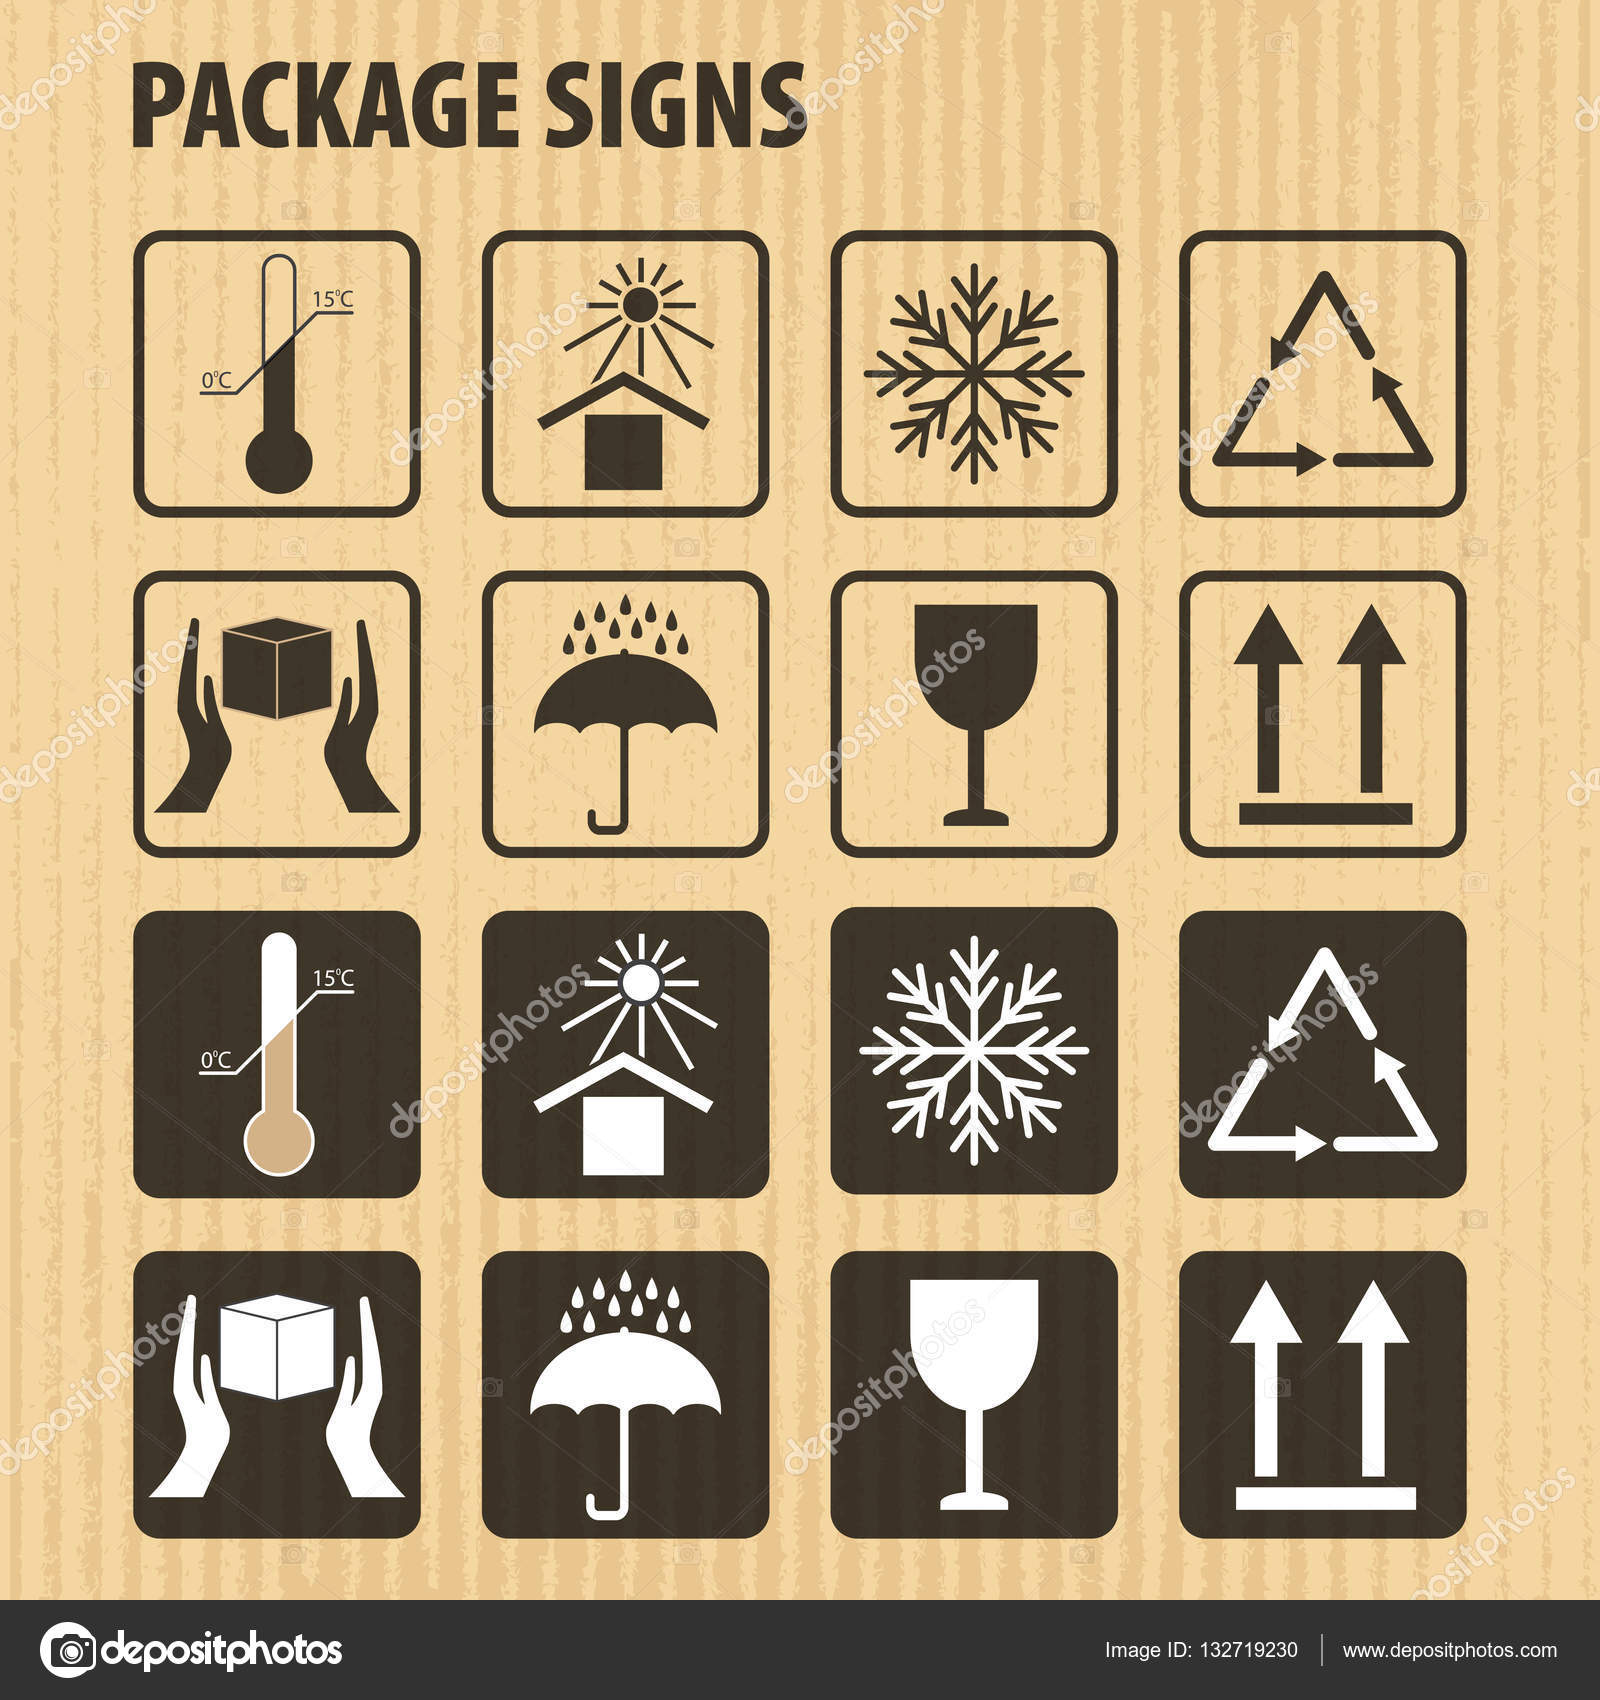 Vector packaging symbols on vector cardboard background icon set vector packaging symbols on vector cardboard background icon set including fragile this side up handle with care keep dry and other caution handling buycottarizona